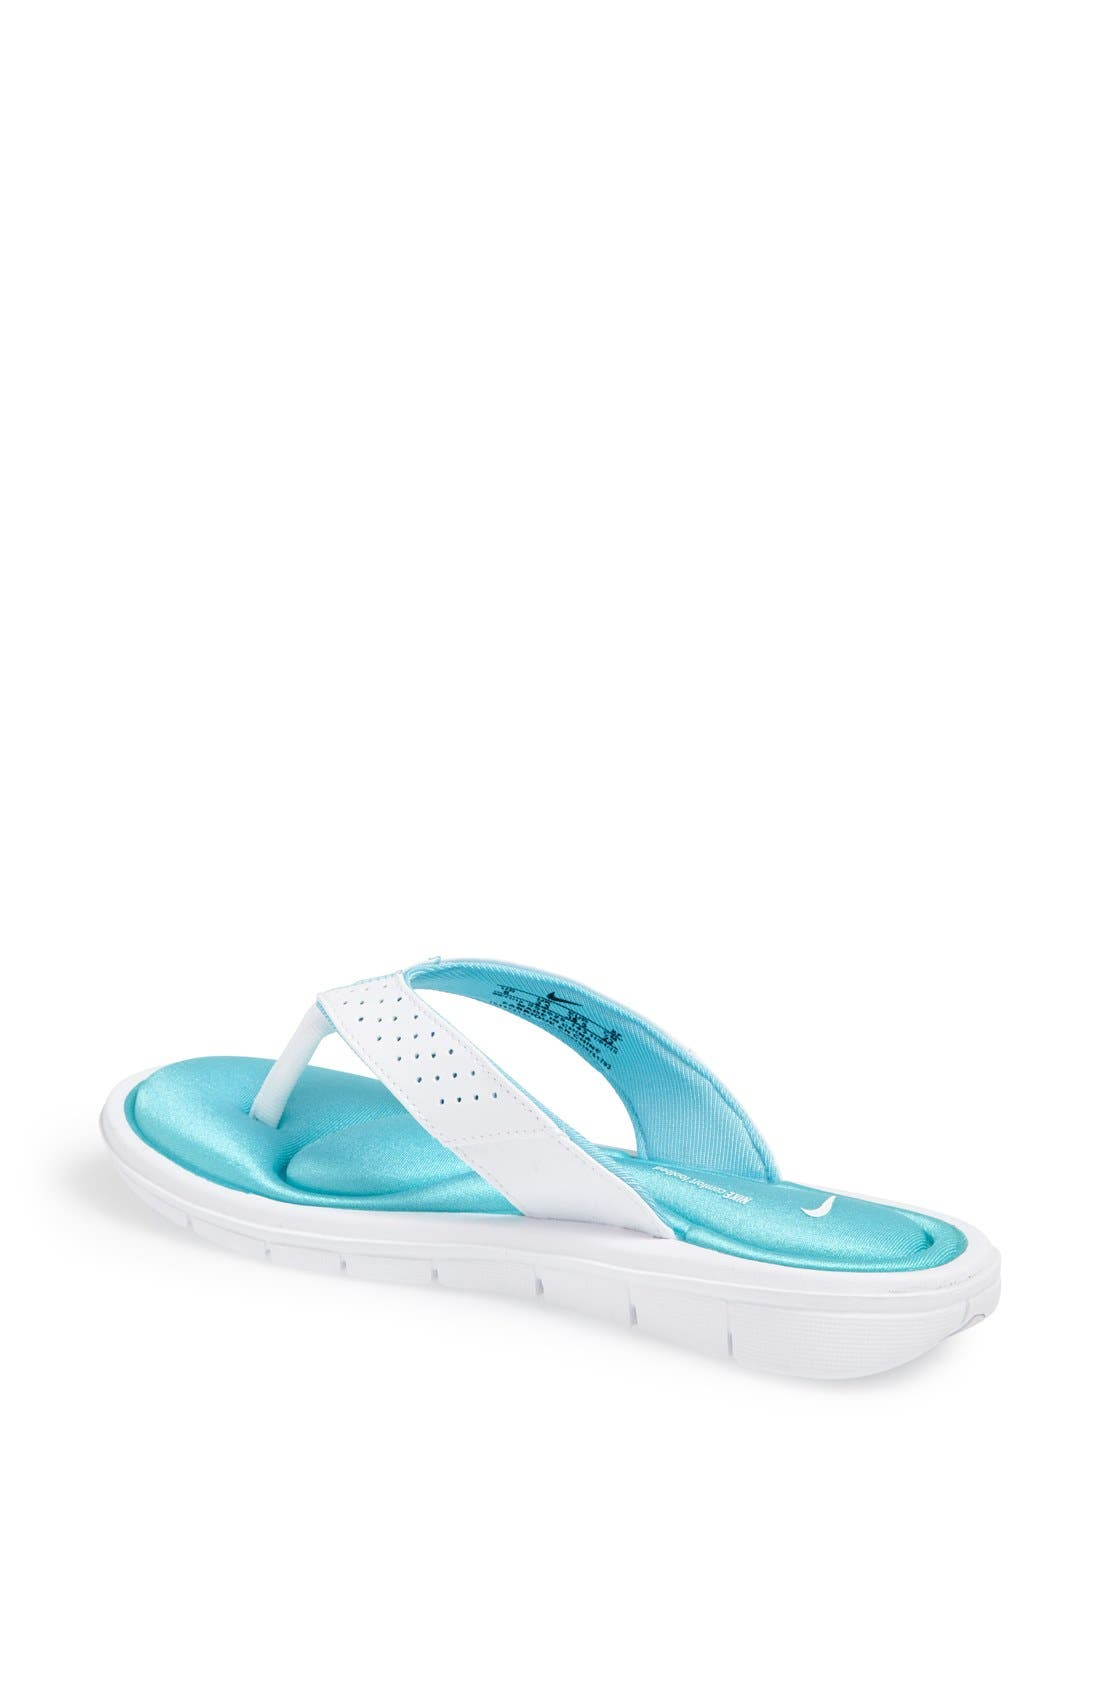 Alternate Image 2  - Nike 'Comfort' Sandal (Women)